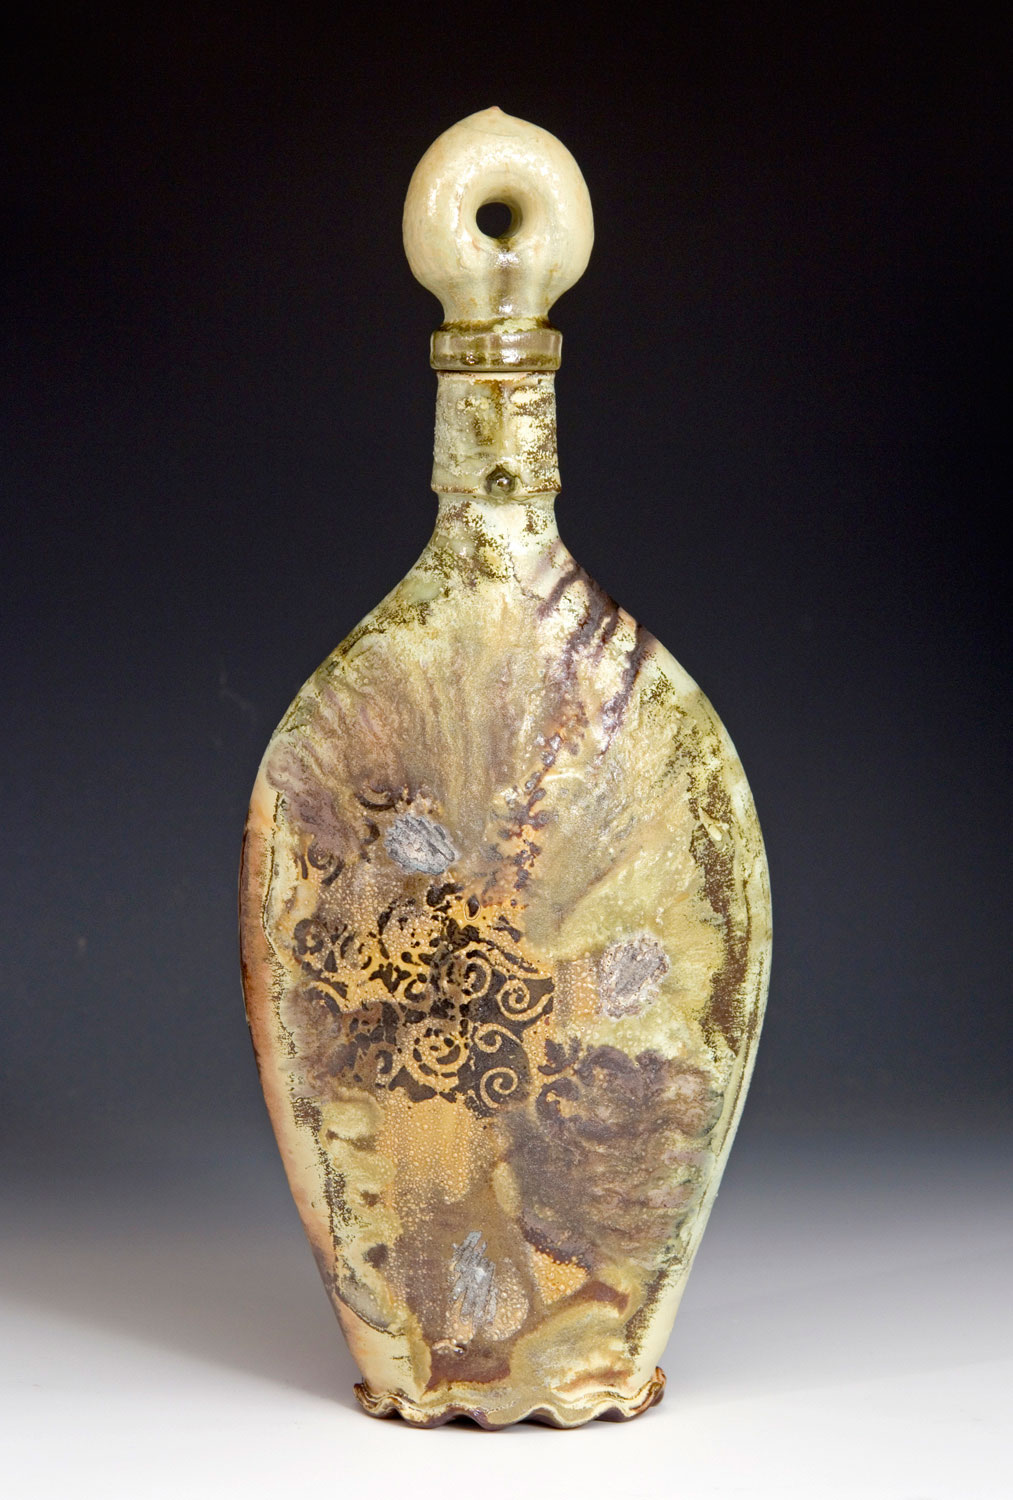 Art-Pottery-Flask-Bruce-Gholson-Seagrove.jpg